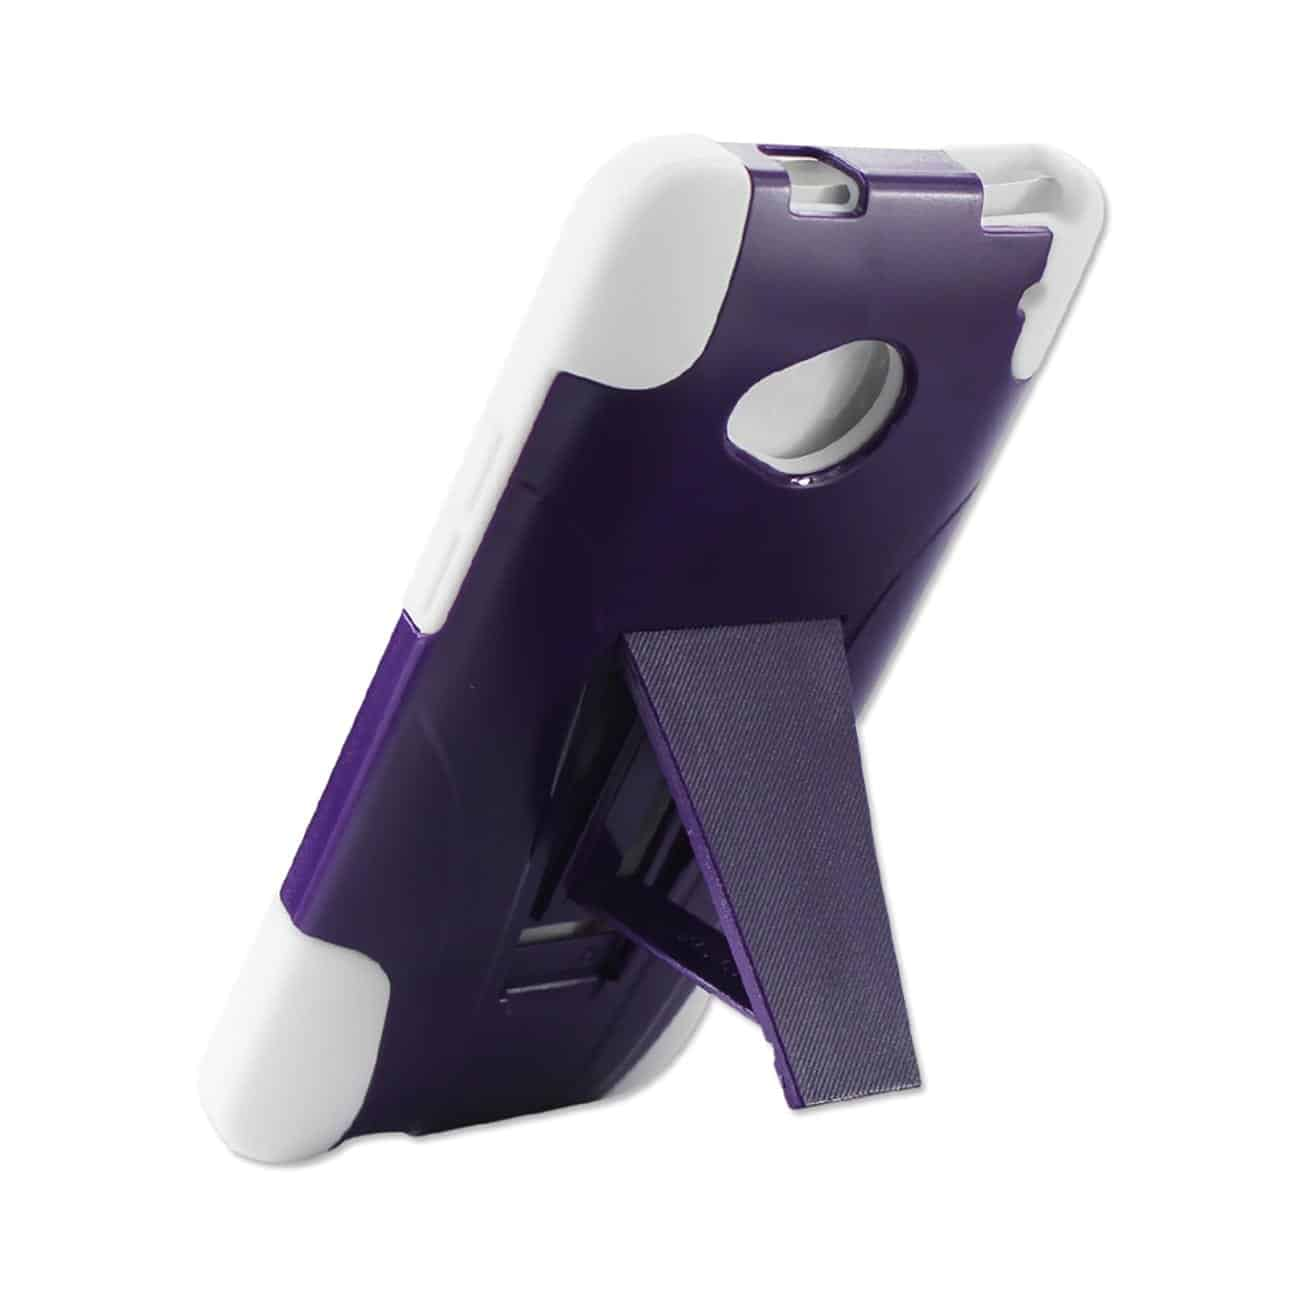 HTC ONE M7 HYBRID HEAVY DUTY CASE WITH KICKSTAND IN PURPLE WHITE